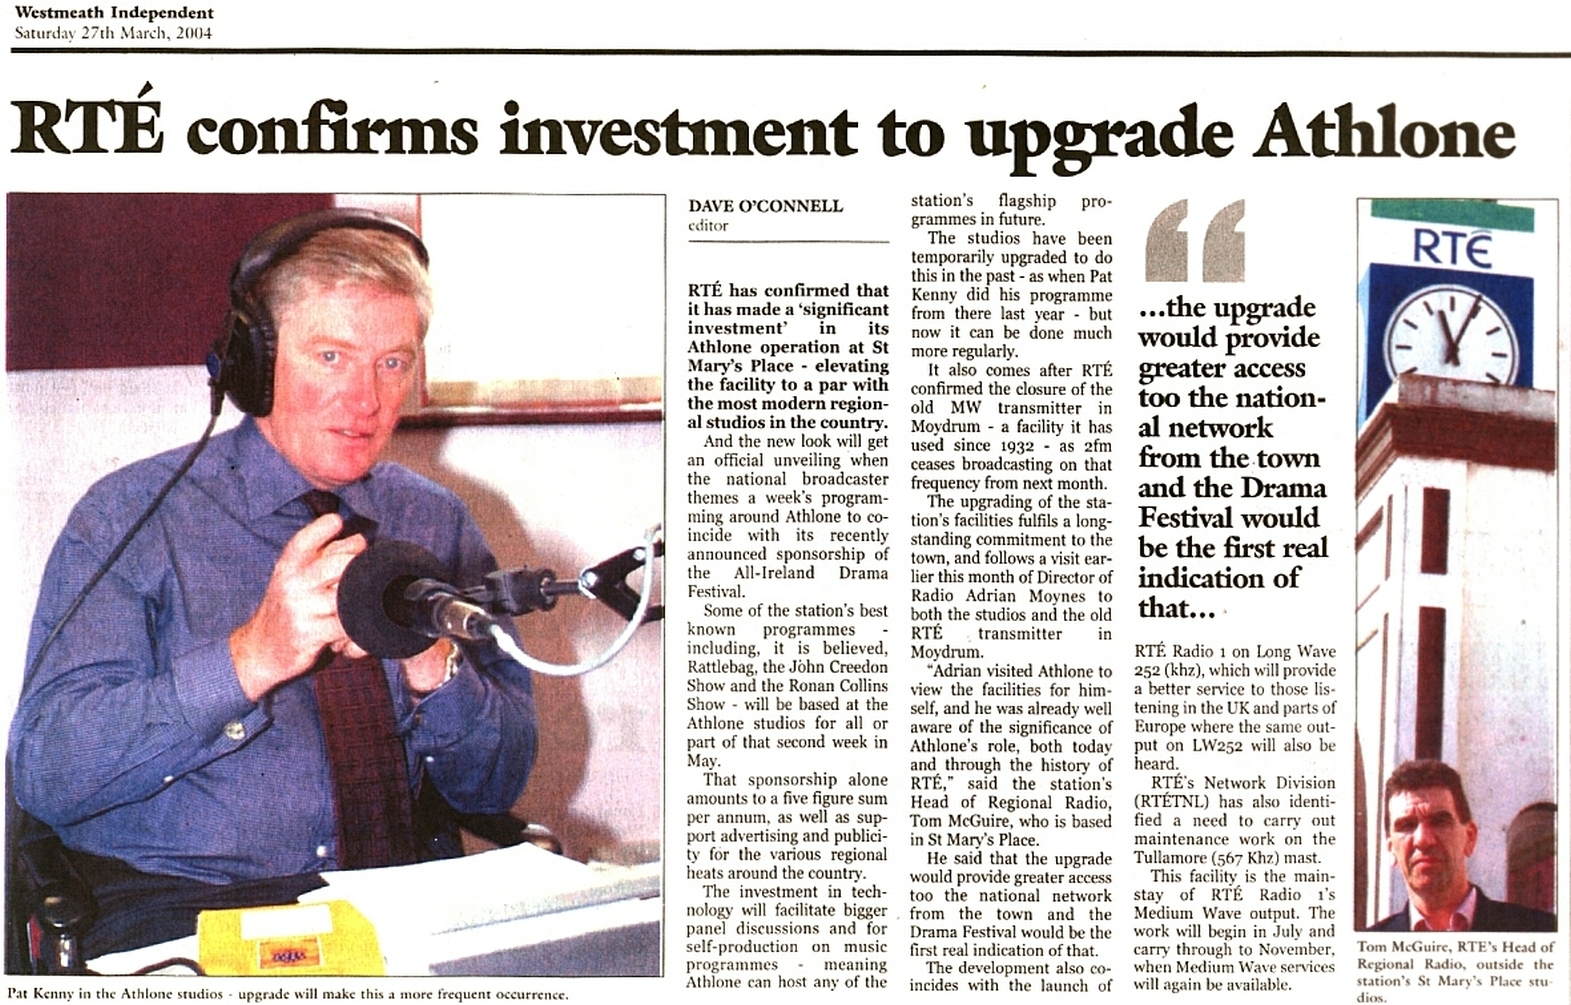 Westmeath Independent - RTÉ confirms investment to upgrade Athlone